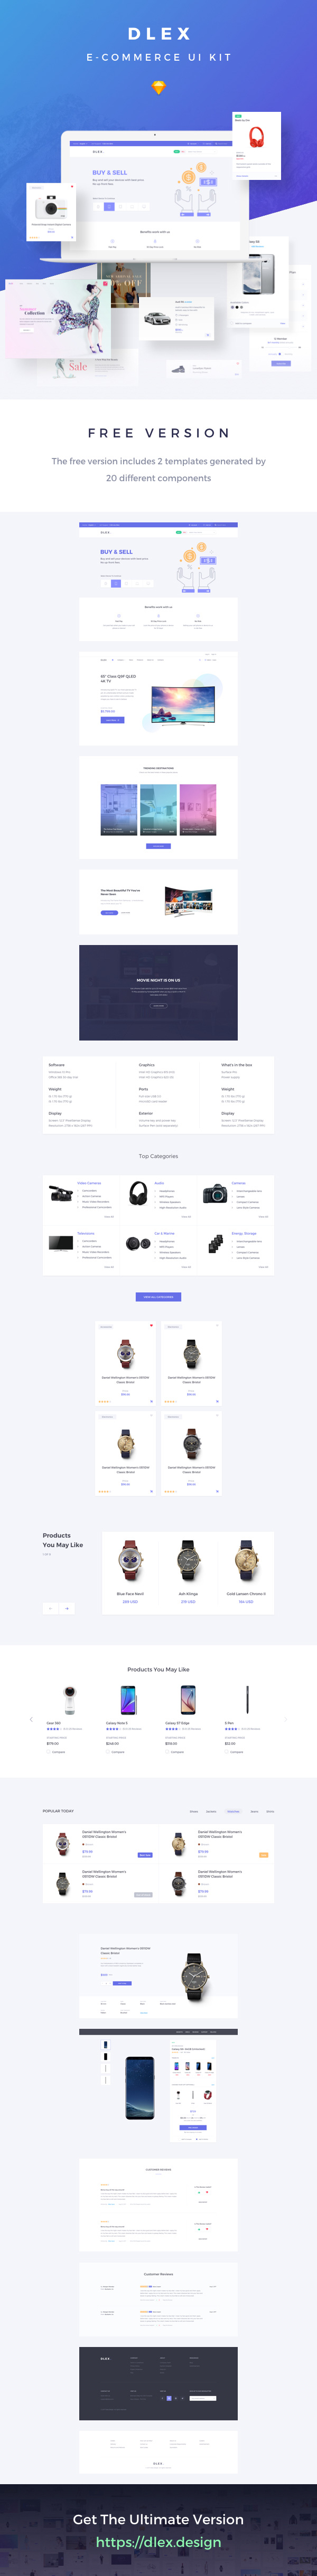 Dlex E-Commerce UI Kit – Free Sample